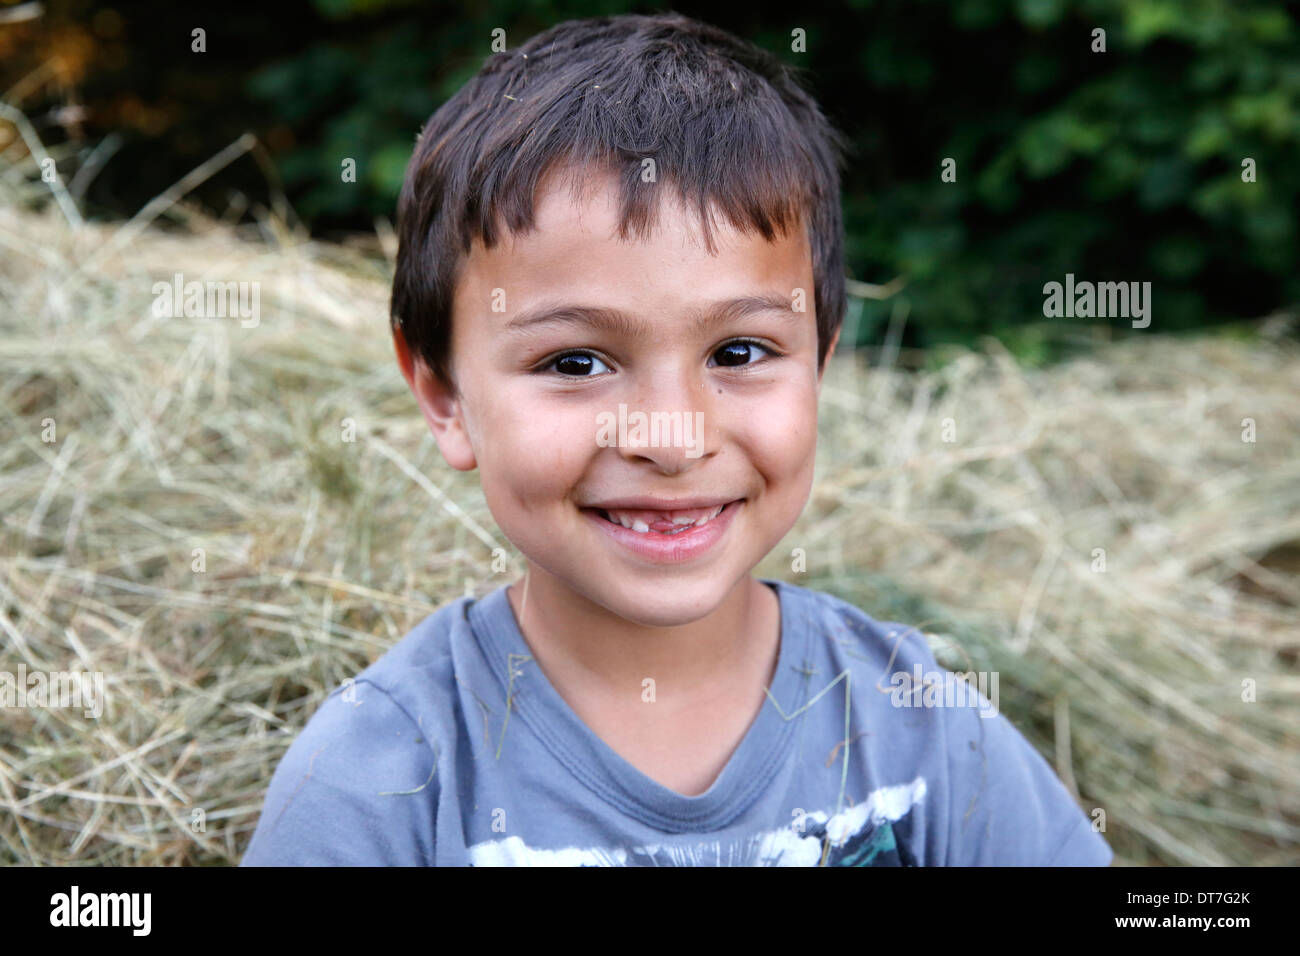 7-year-old boy with missing teeth - Stock Image